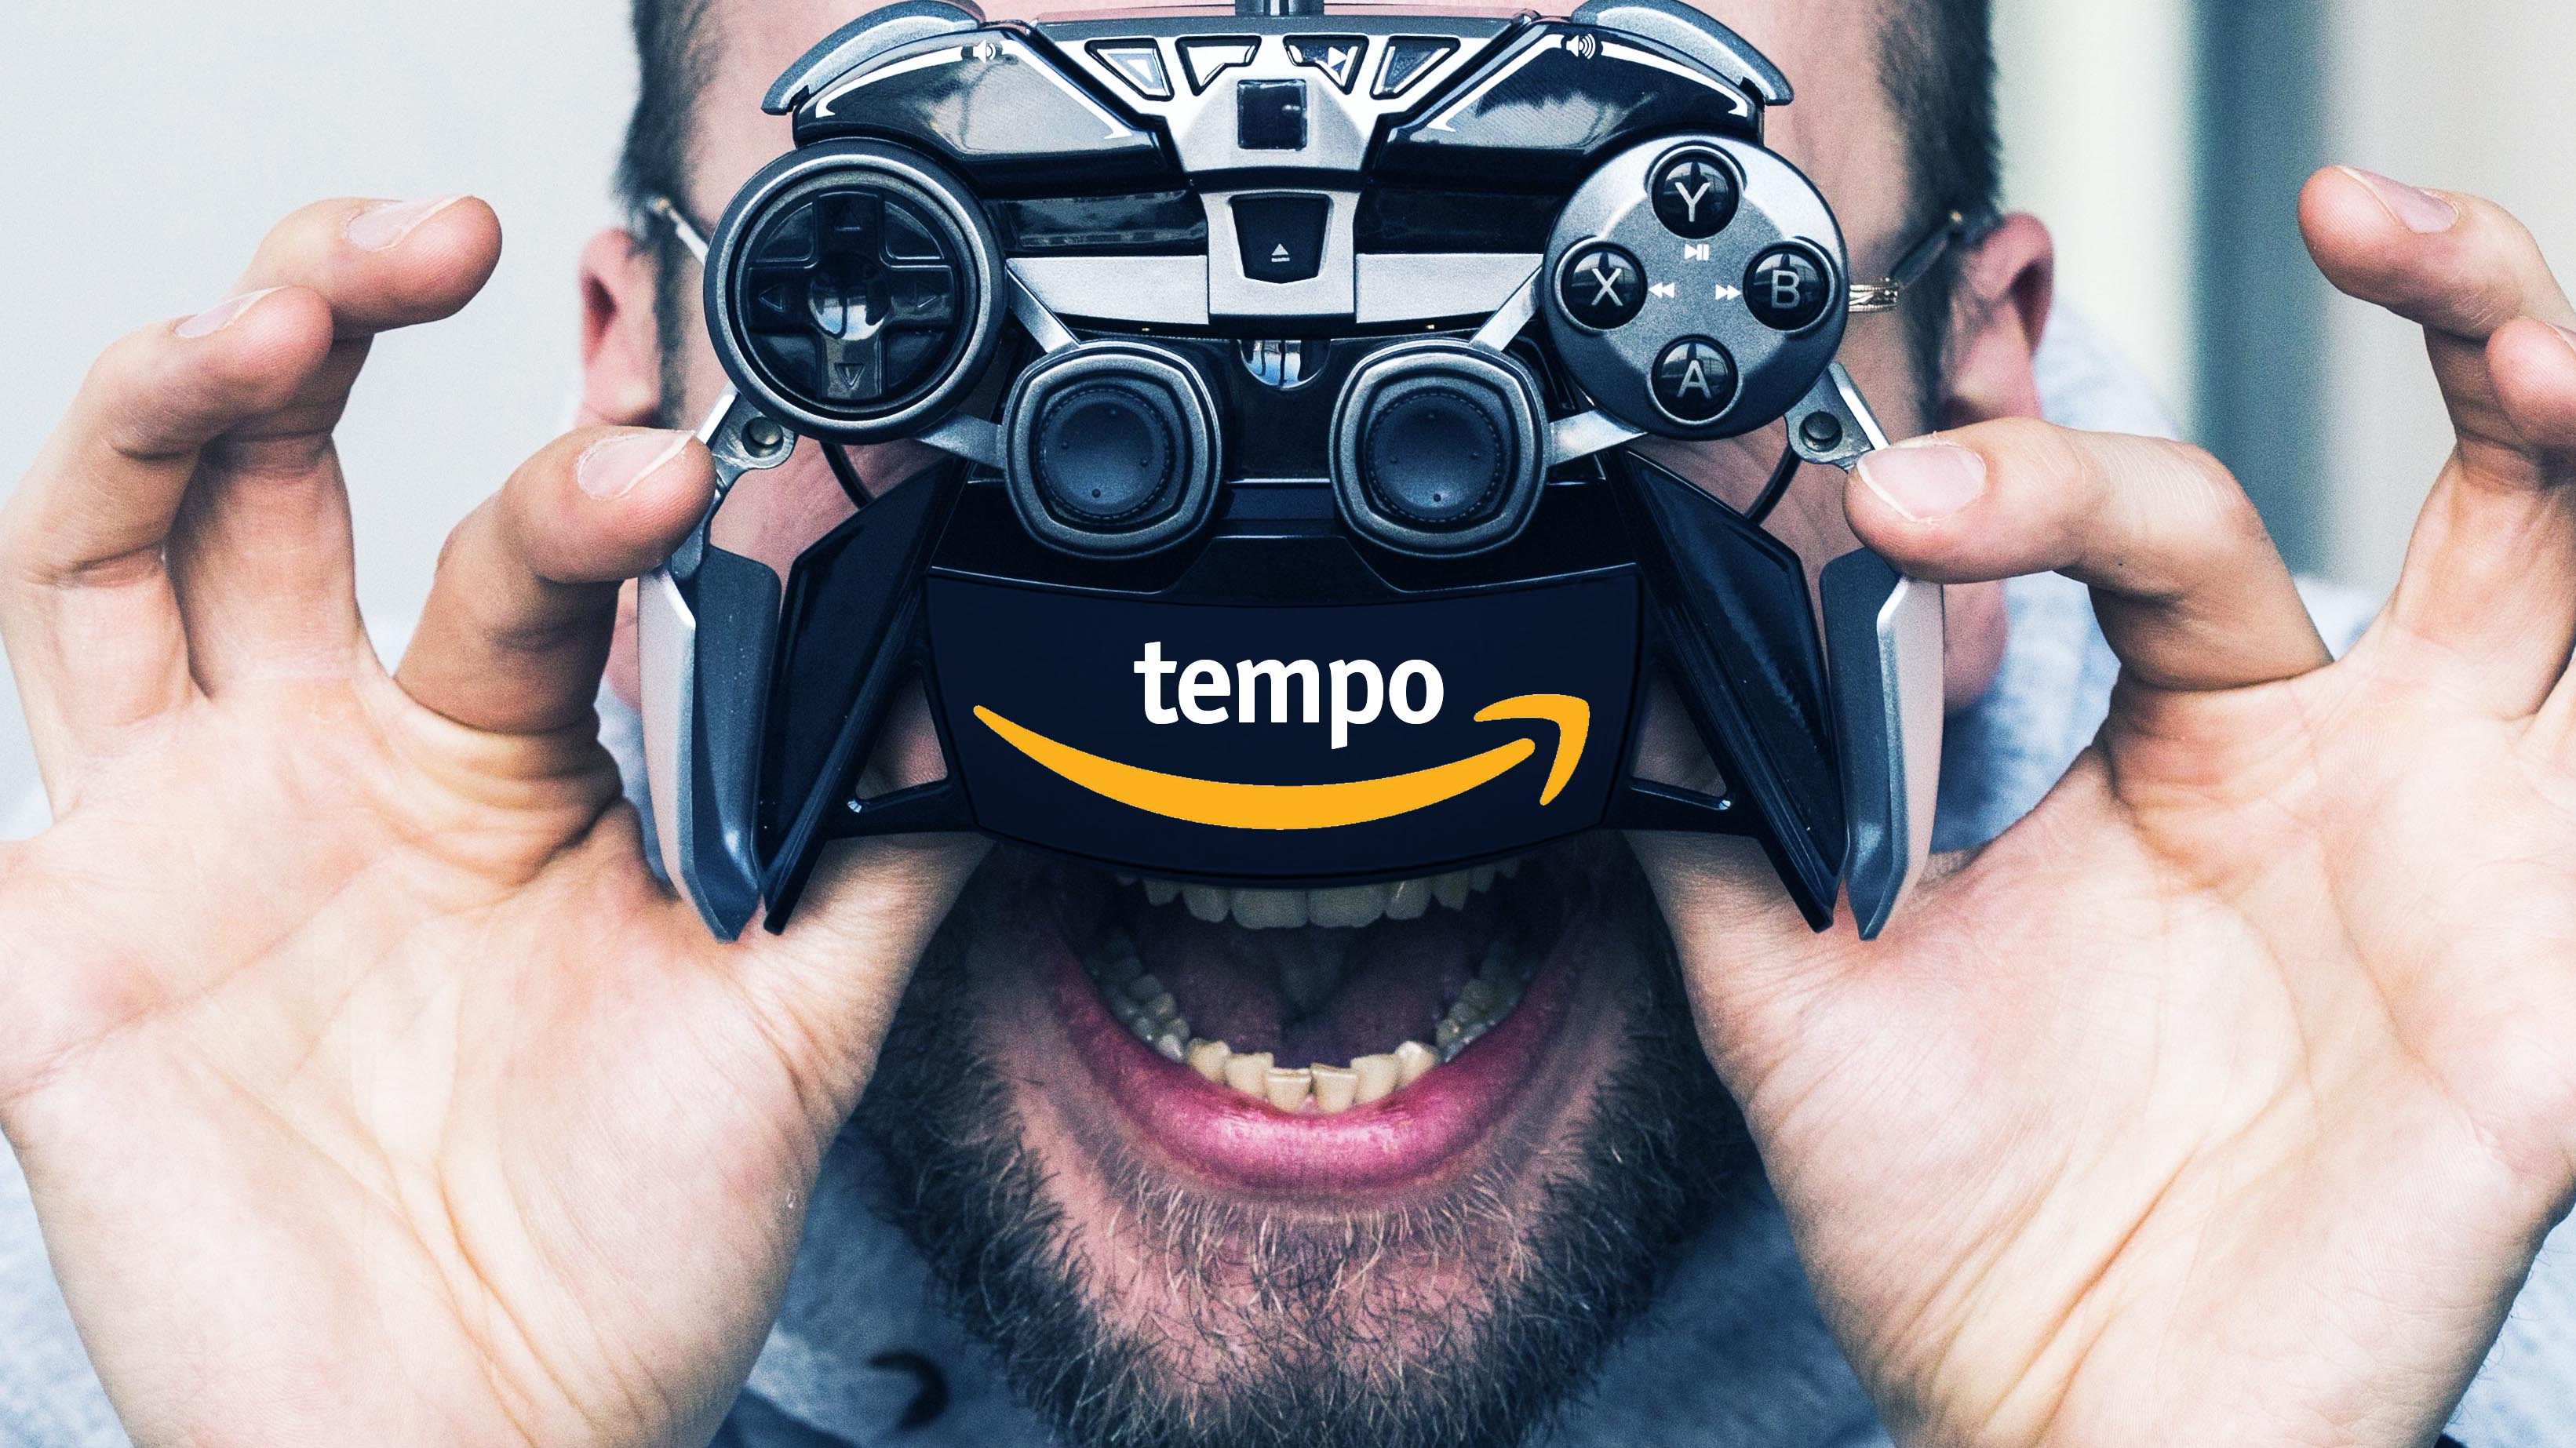 Cloud Gaming: Amazon to launch Project Tempo gaming platform ...